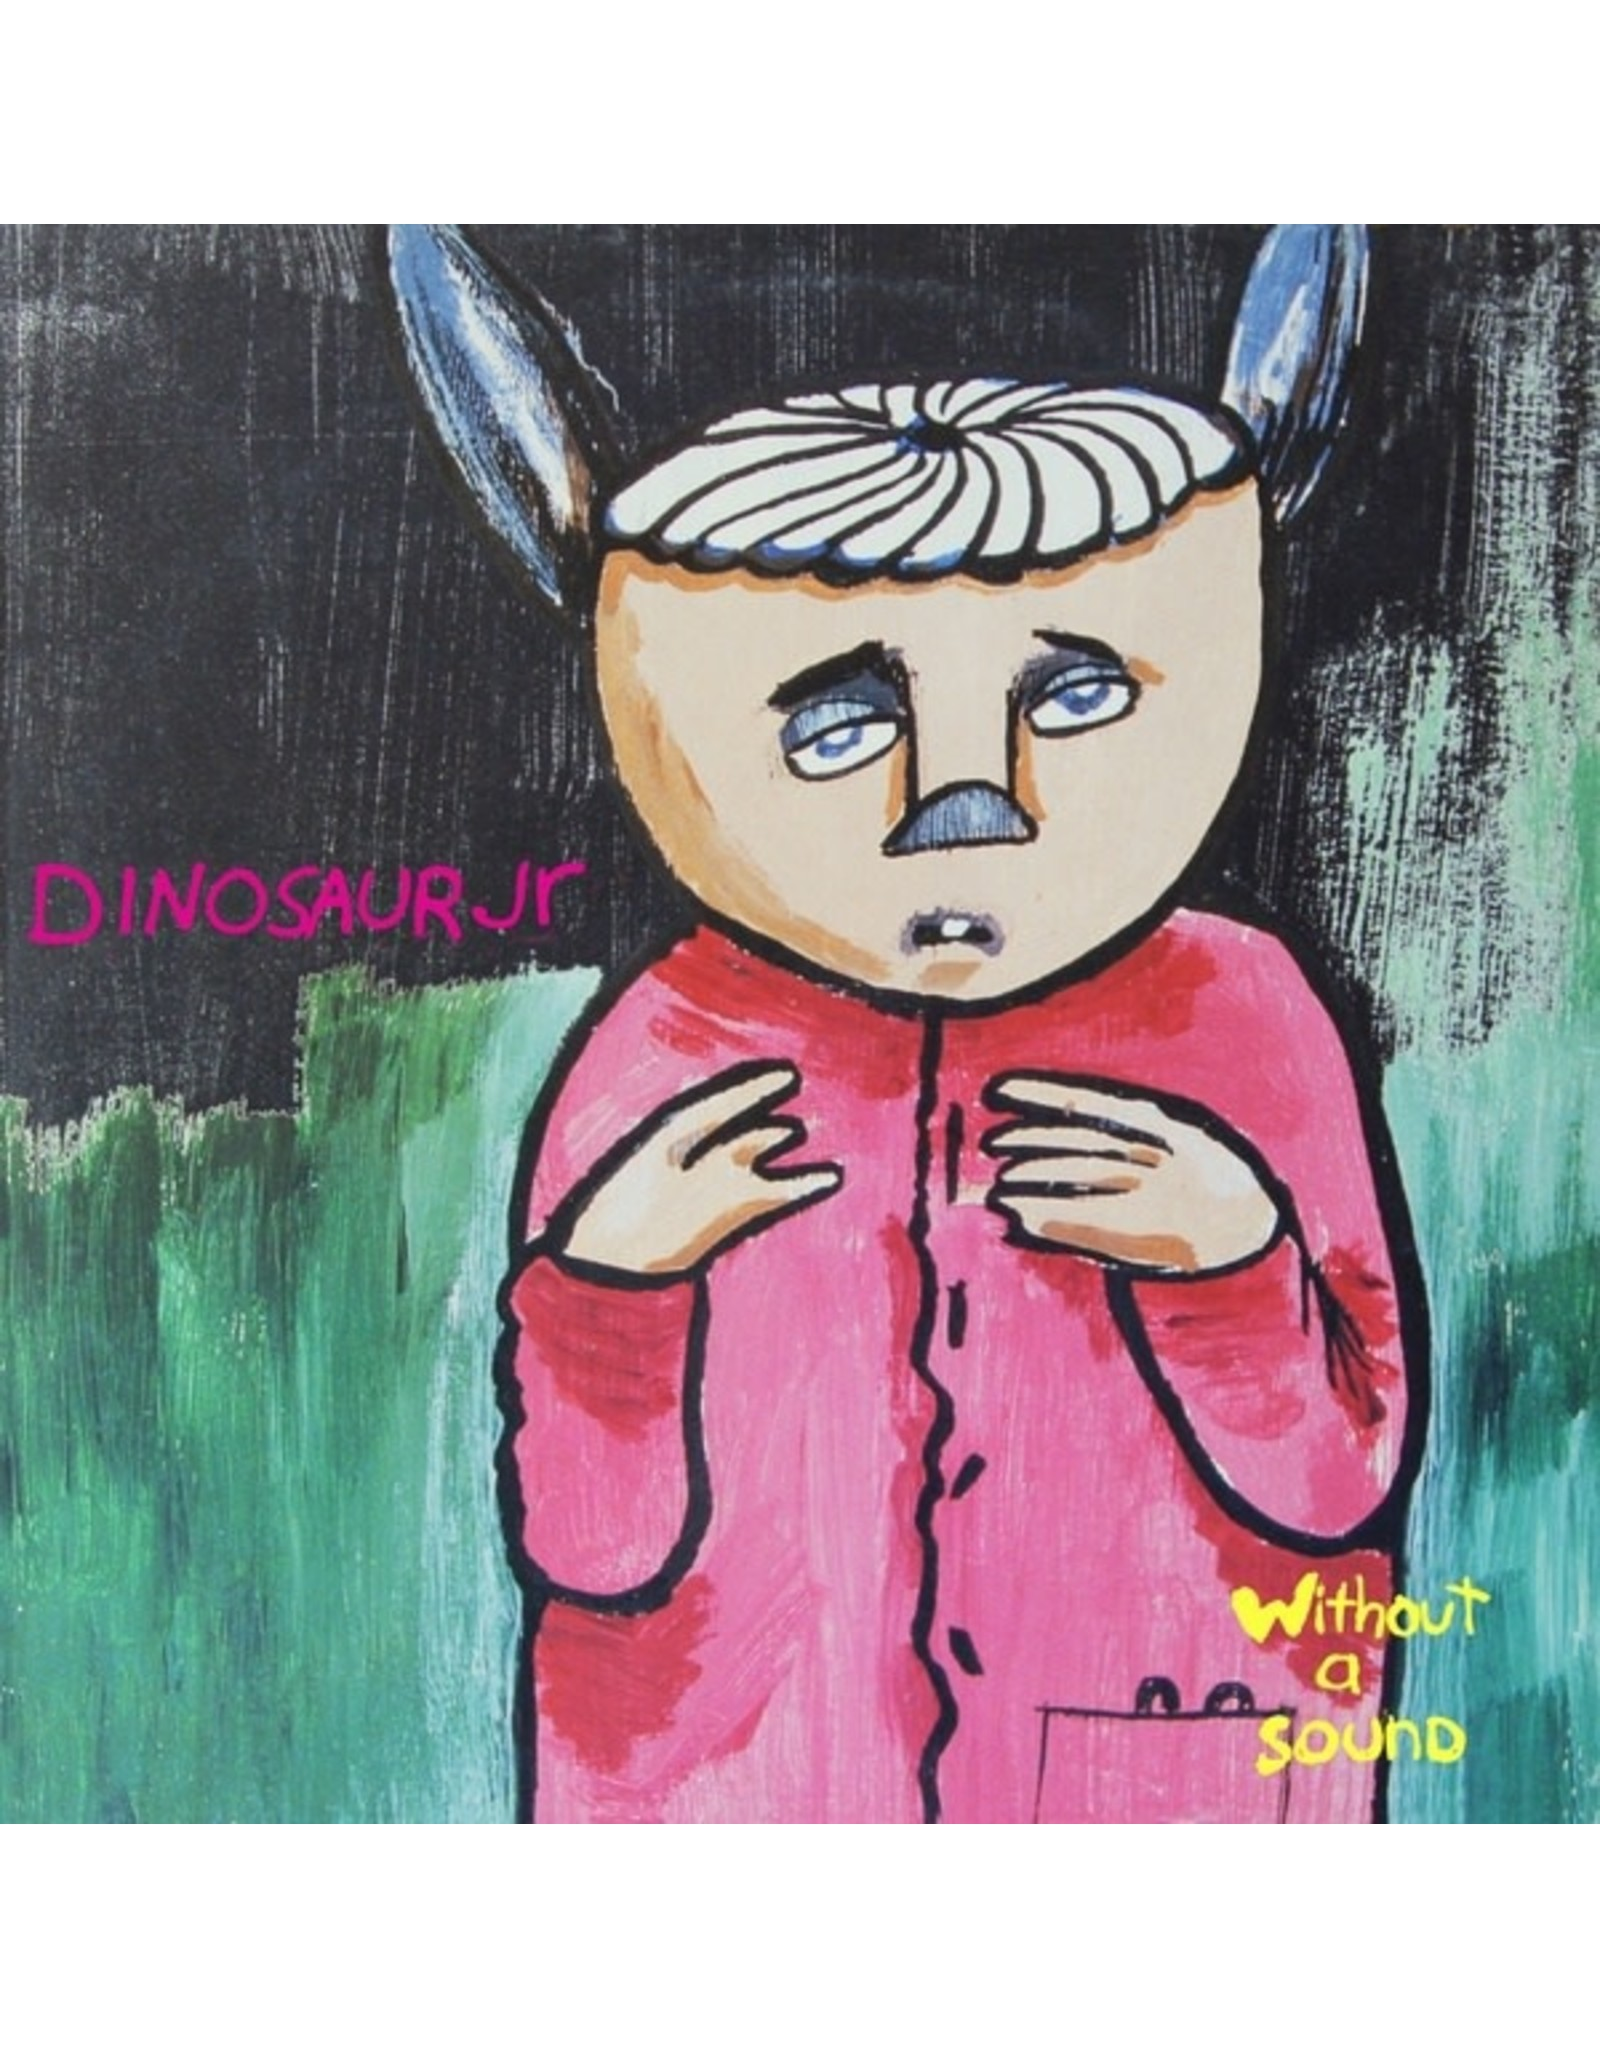 Cherry Red Dinosaur Jr.: Without A Sound: Deluxe Expanded Edition (Double Gatefold Yellow Vinyl) LP